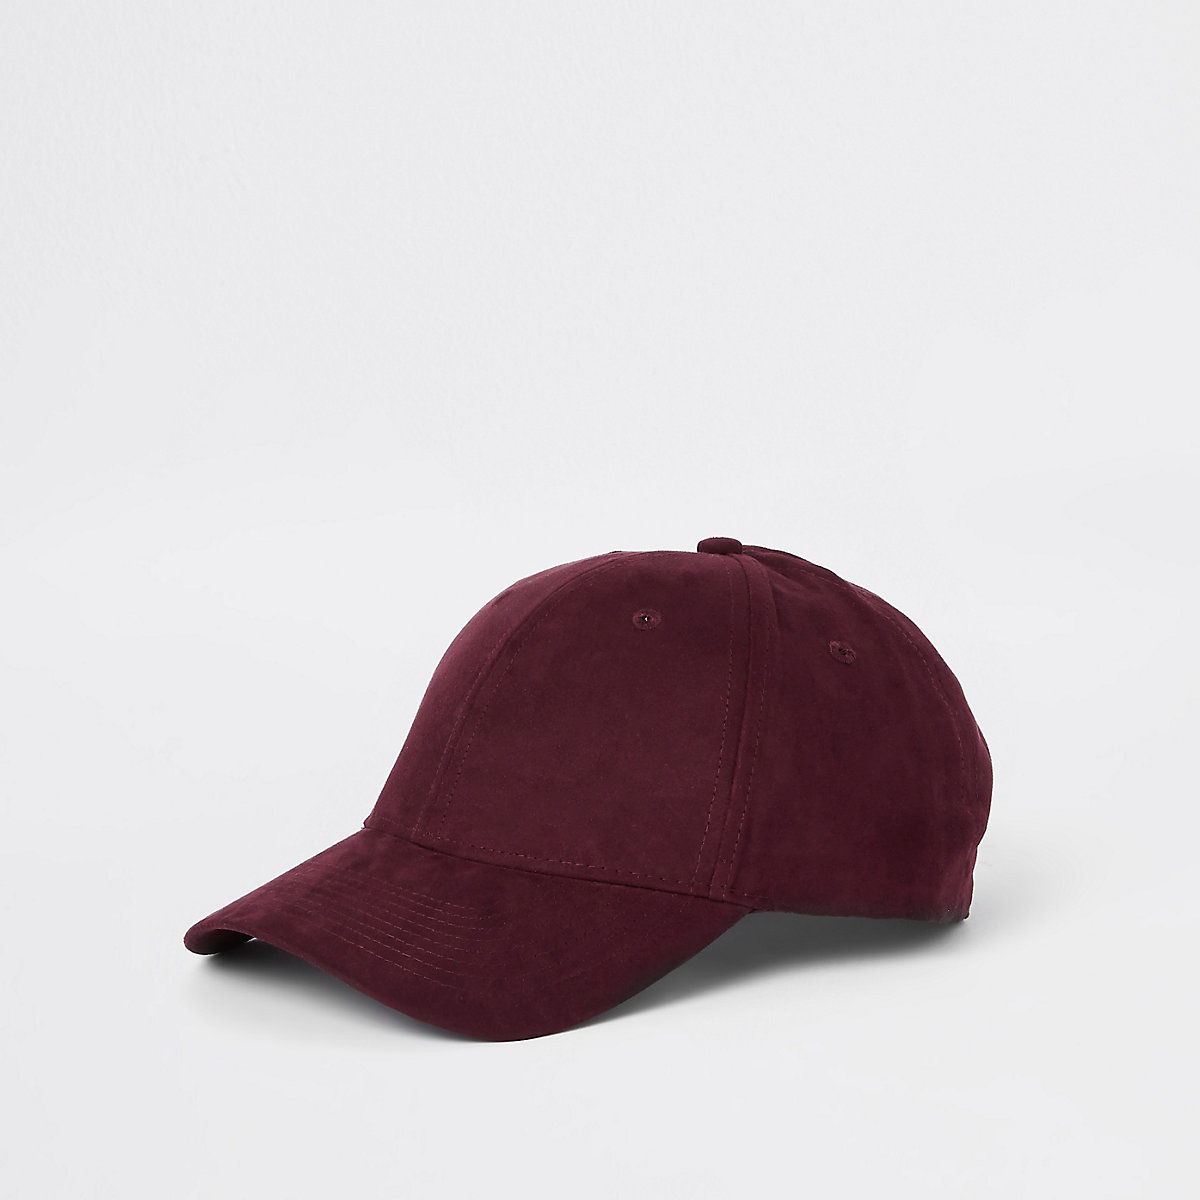 Dark red suede baseball cap